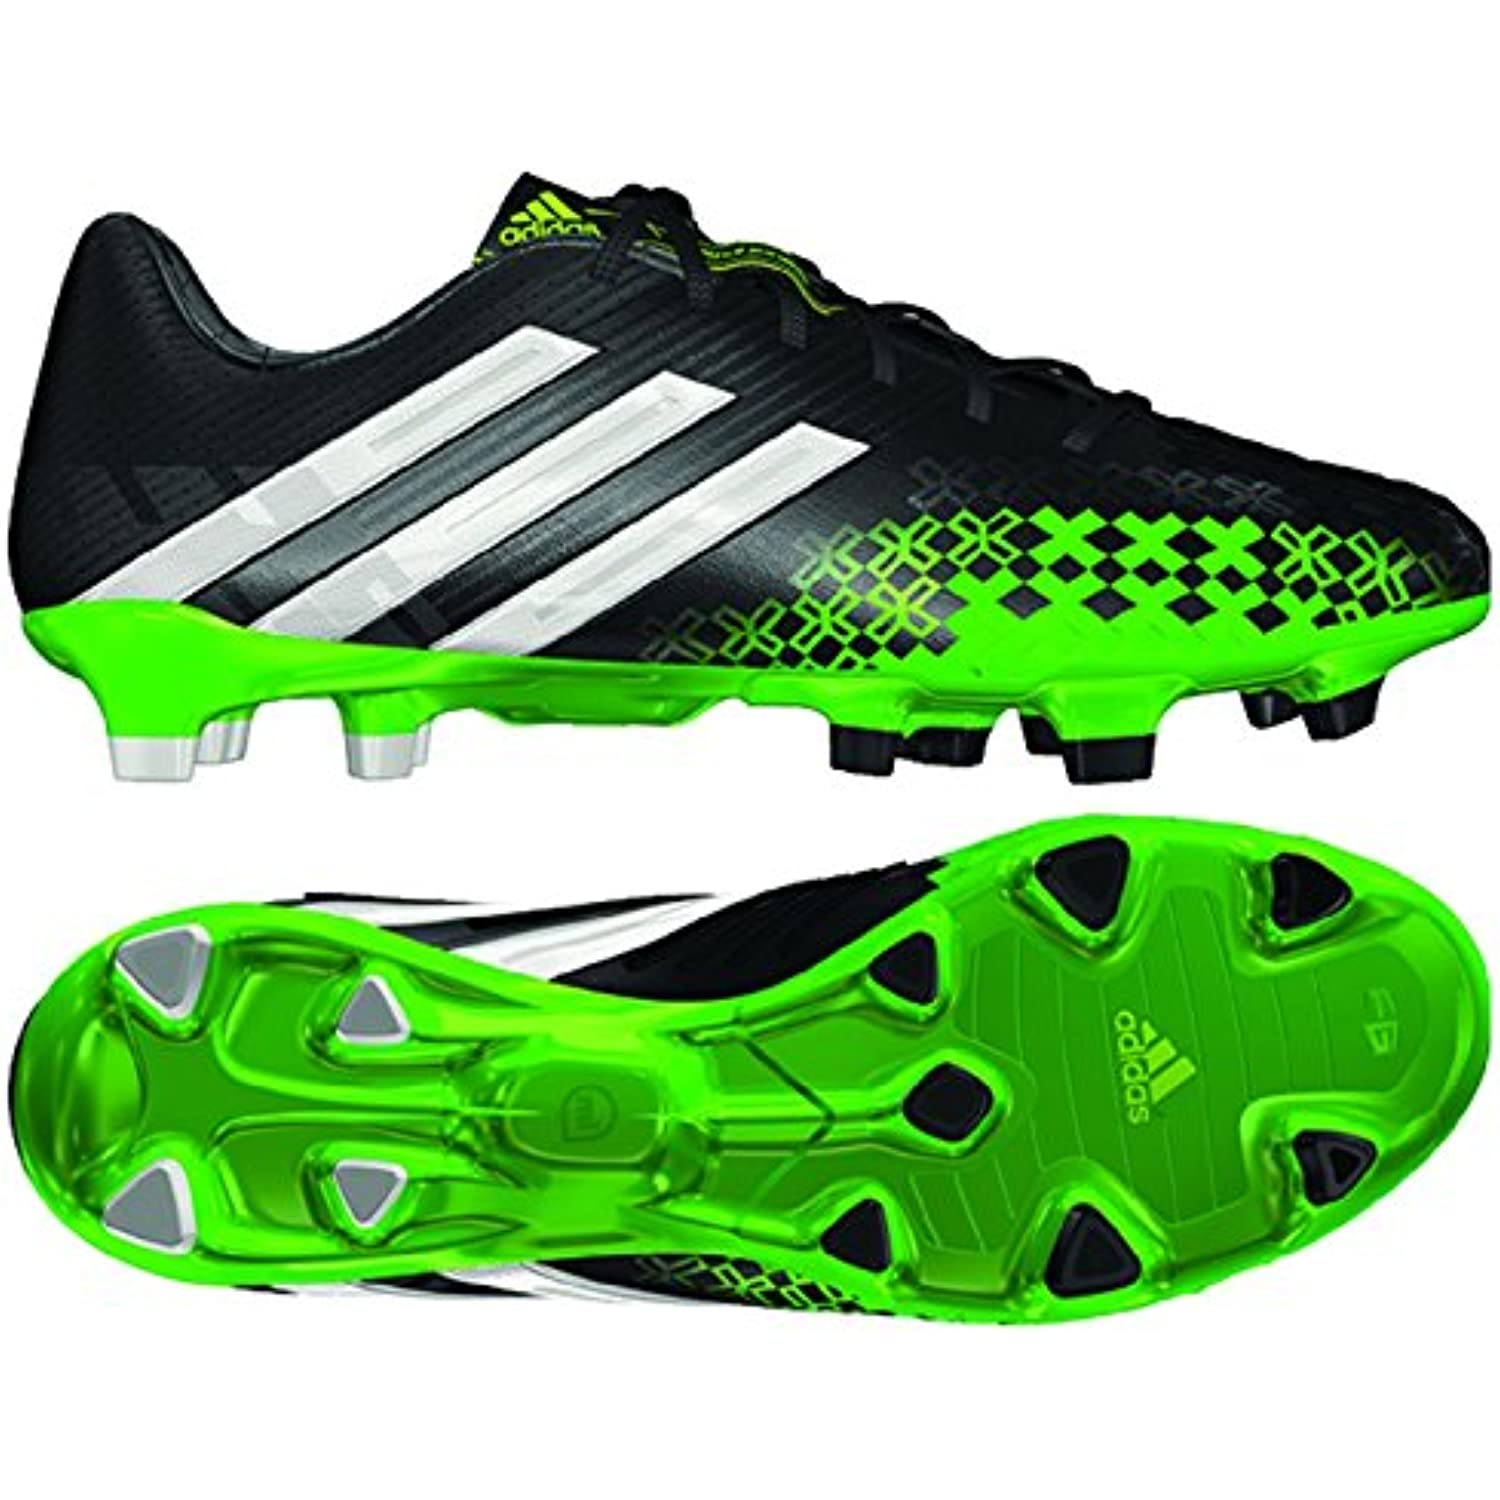 Adidas PRouge ator Lethal Zone TRX FG Chaussure - De Football - B00D9S7UNA - Chaussure 860ff4